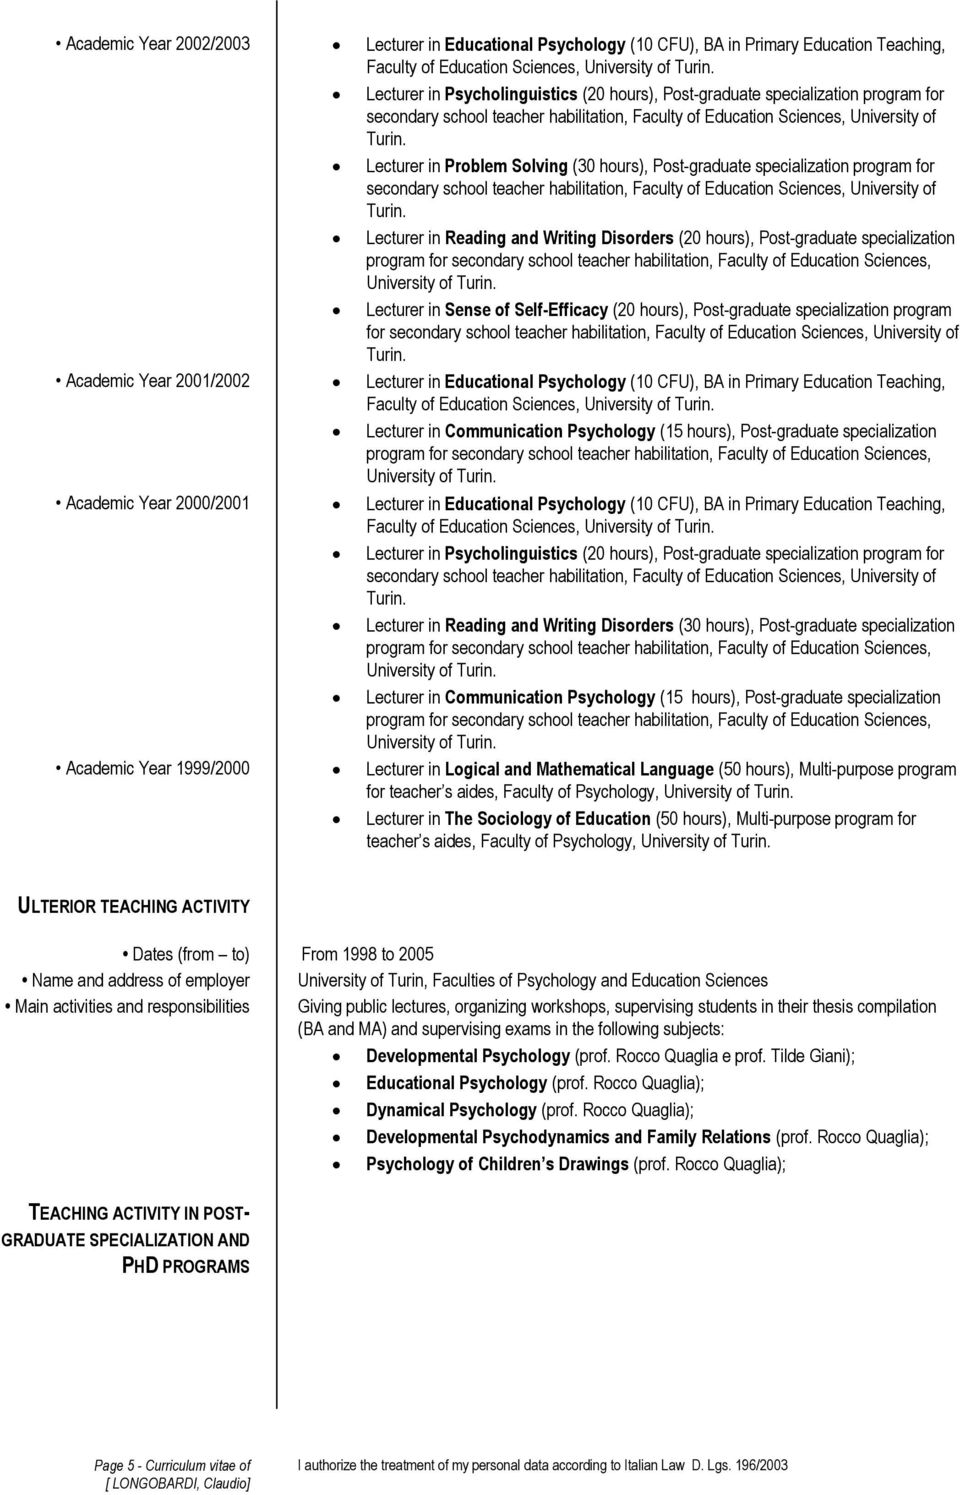 secondary school teacher habilitation, Faculty of Education Sciences, University of Lecturer in Reading and Writing Disorders (20 hours), Post-graduate specialization Lecturer in Sense of